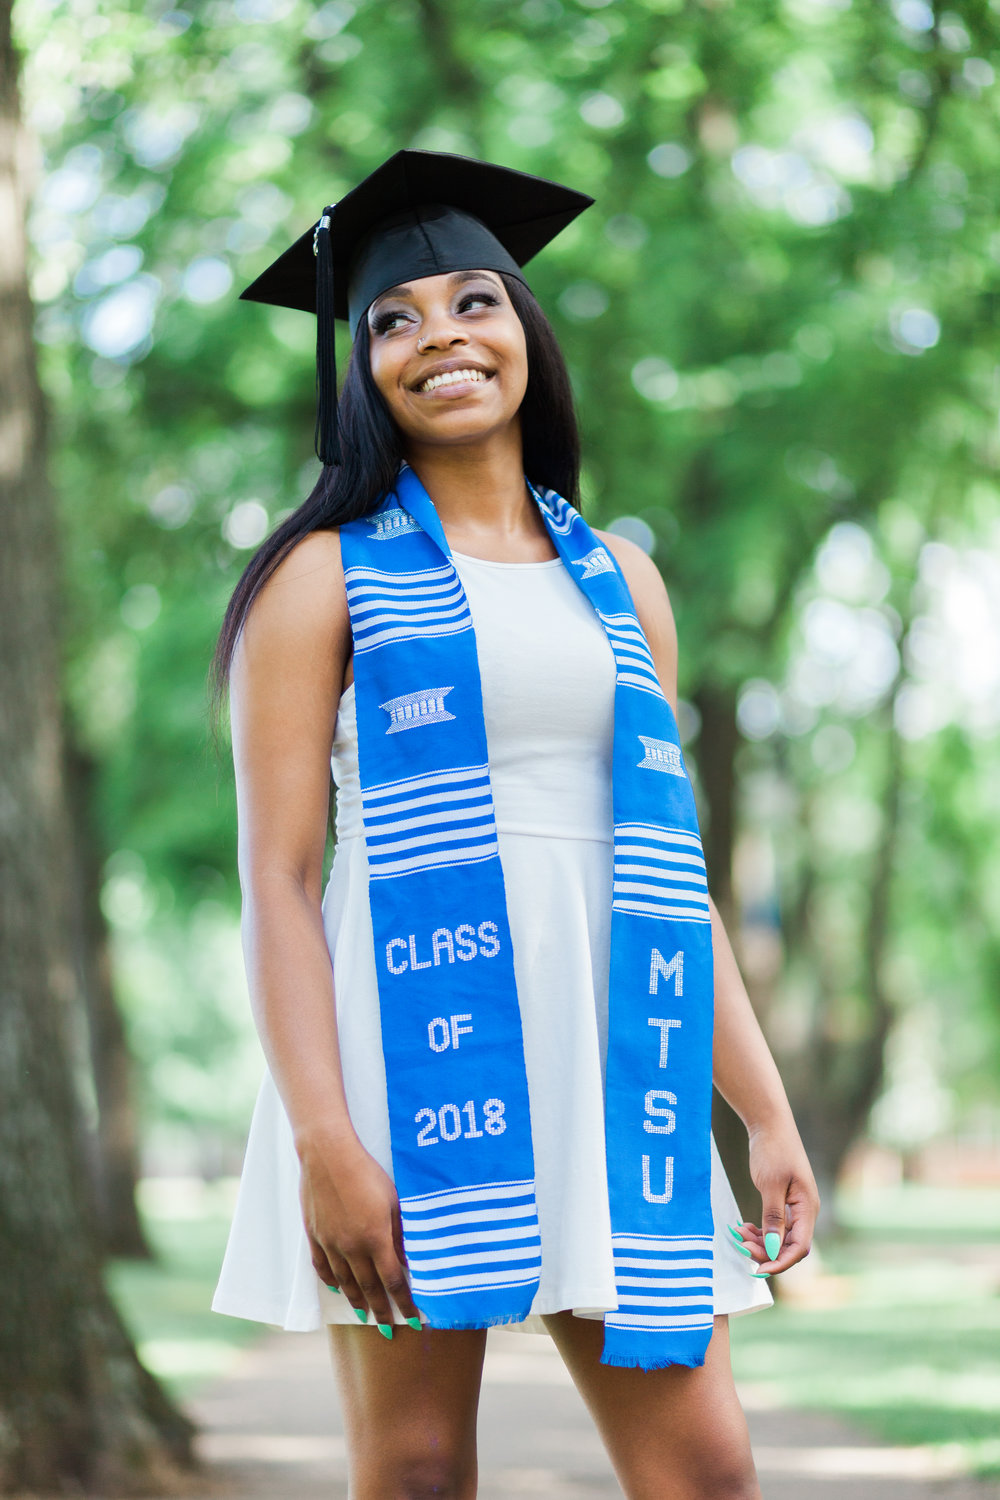 Ariel | Middle Tennessee State University, Class of 2018